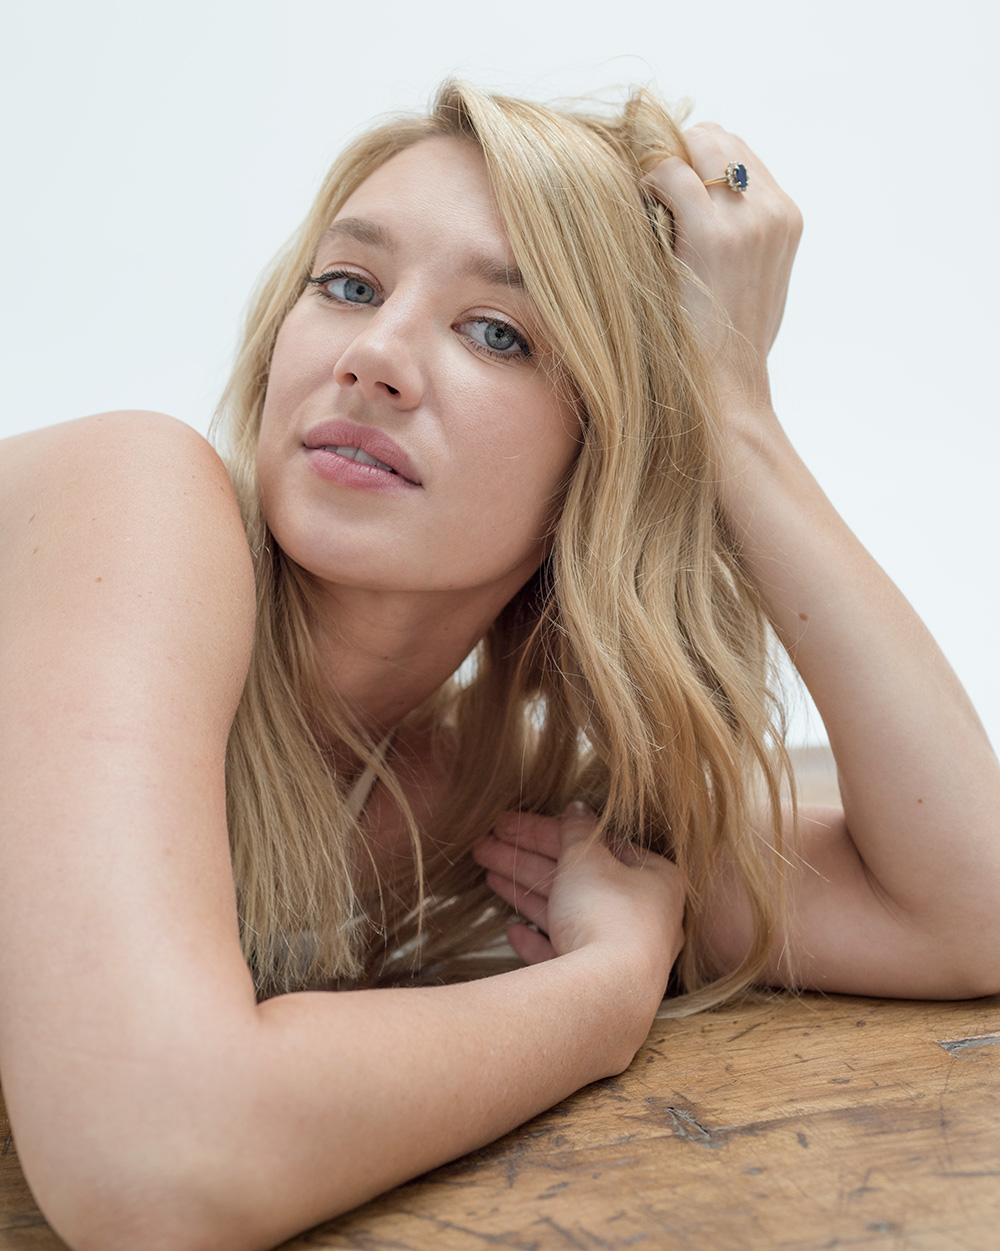 Photo of actress Yael grobglas by Christian Witkin for MONROWE Magazine